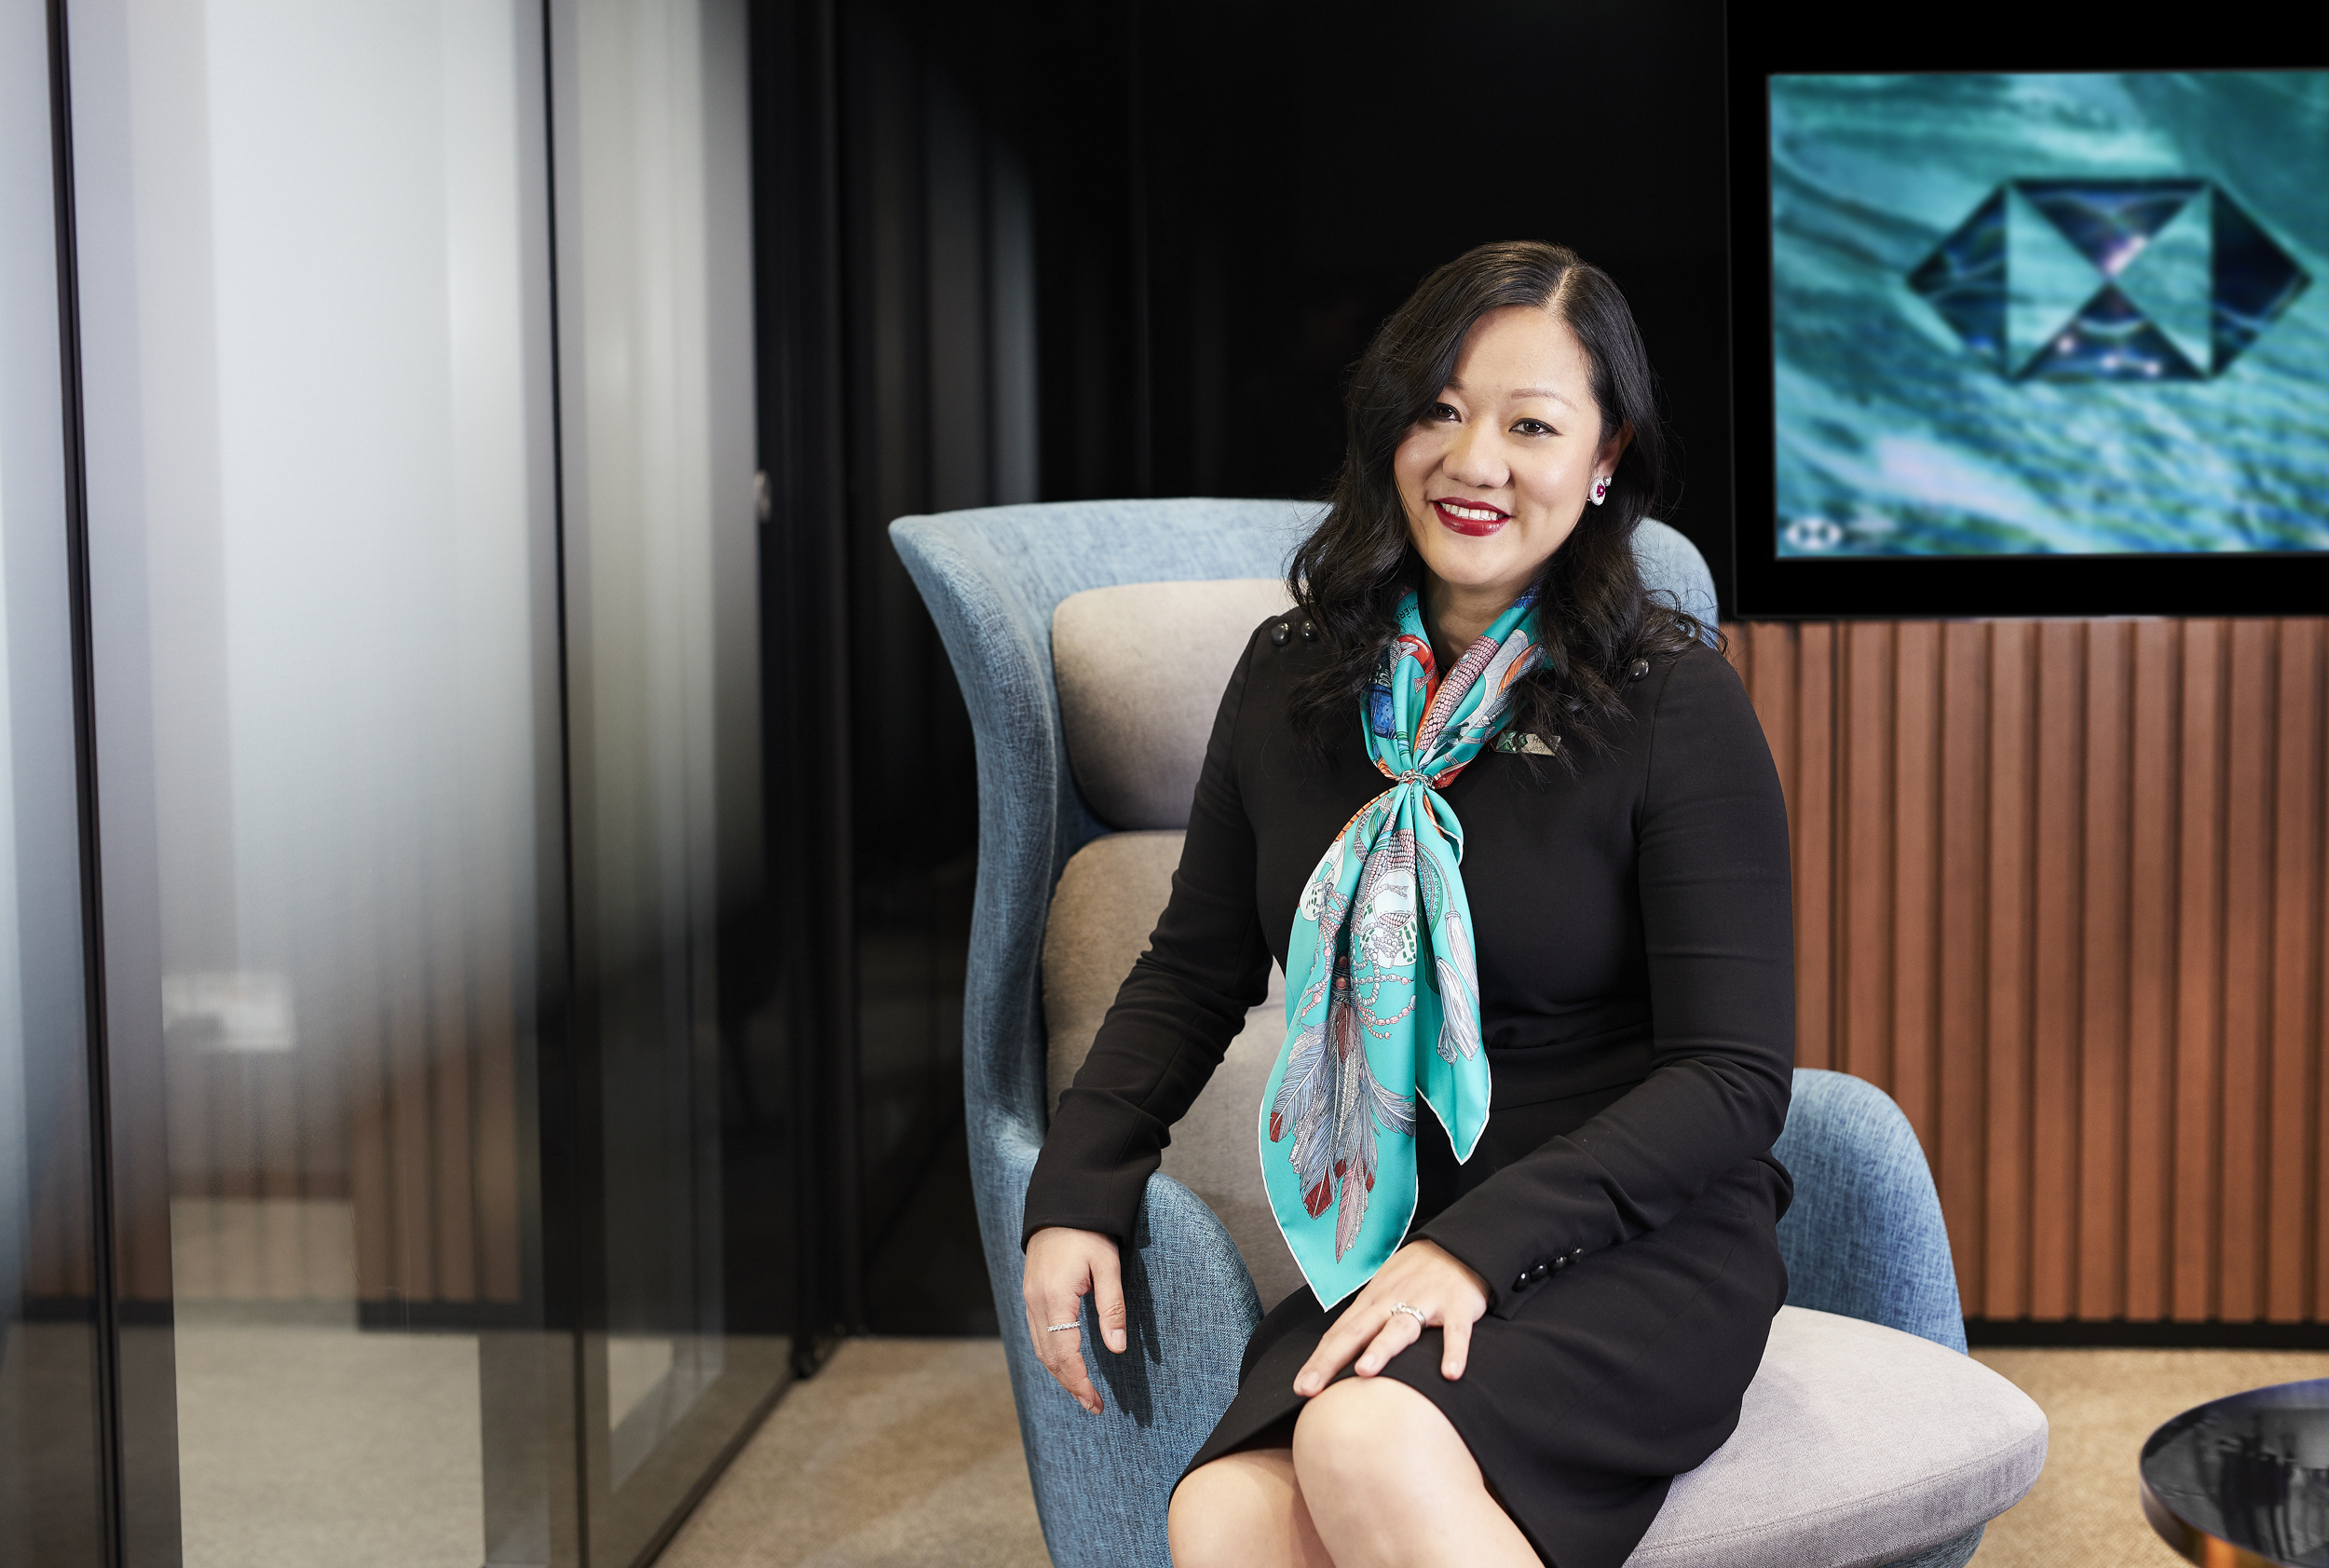 HSBC Group Head of Premier & Jade Bonnie Qiu on what Singapore's affluent really want